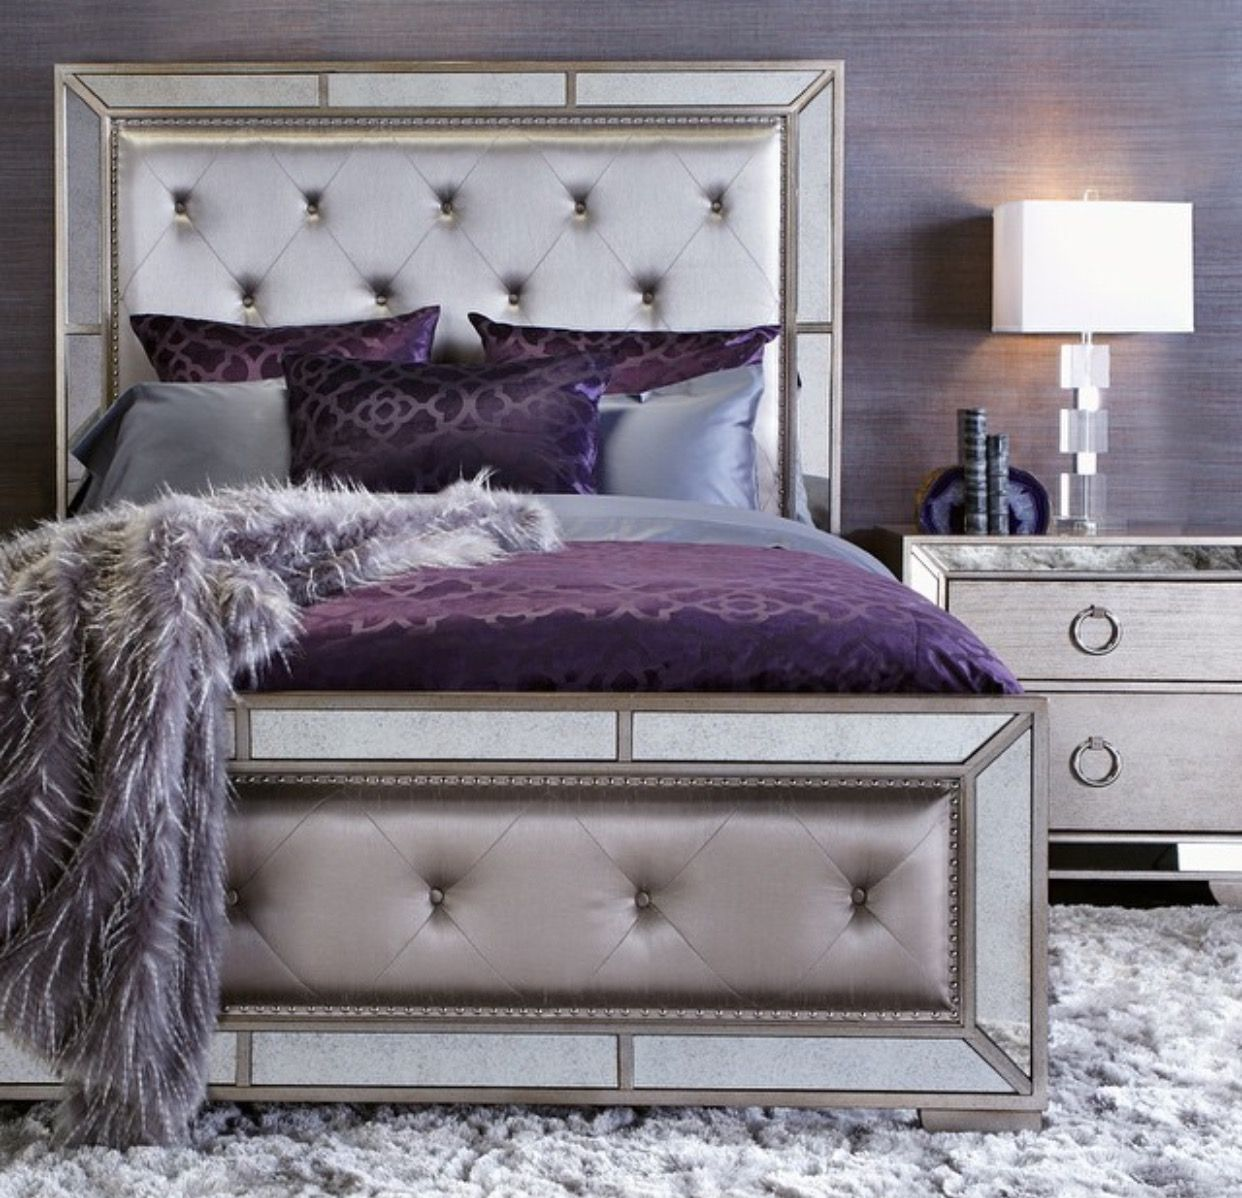 Master bedroom art above bed  Gorgeous color palette  For the crib  Pinterest  Bedrooms Master